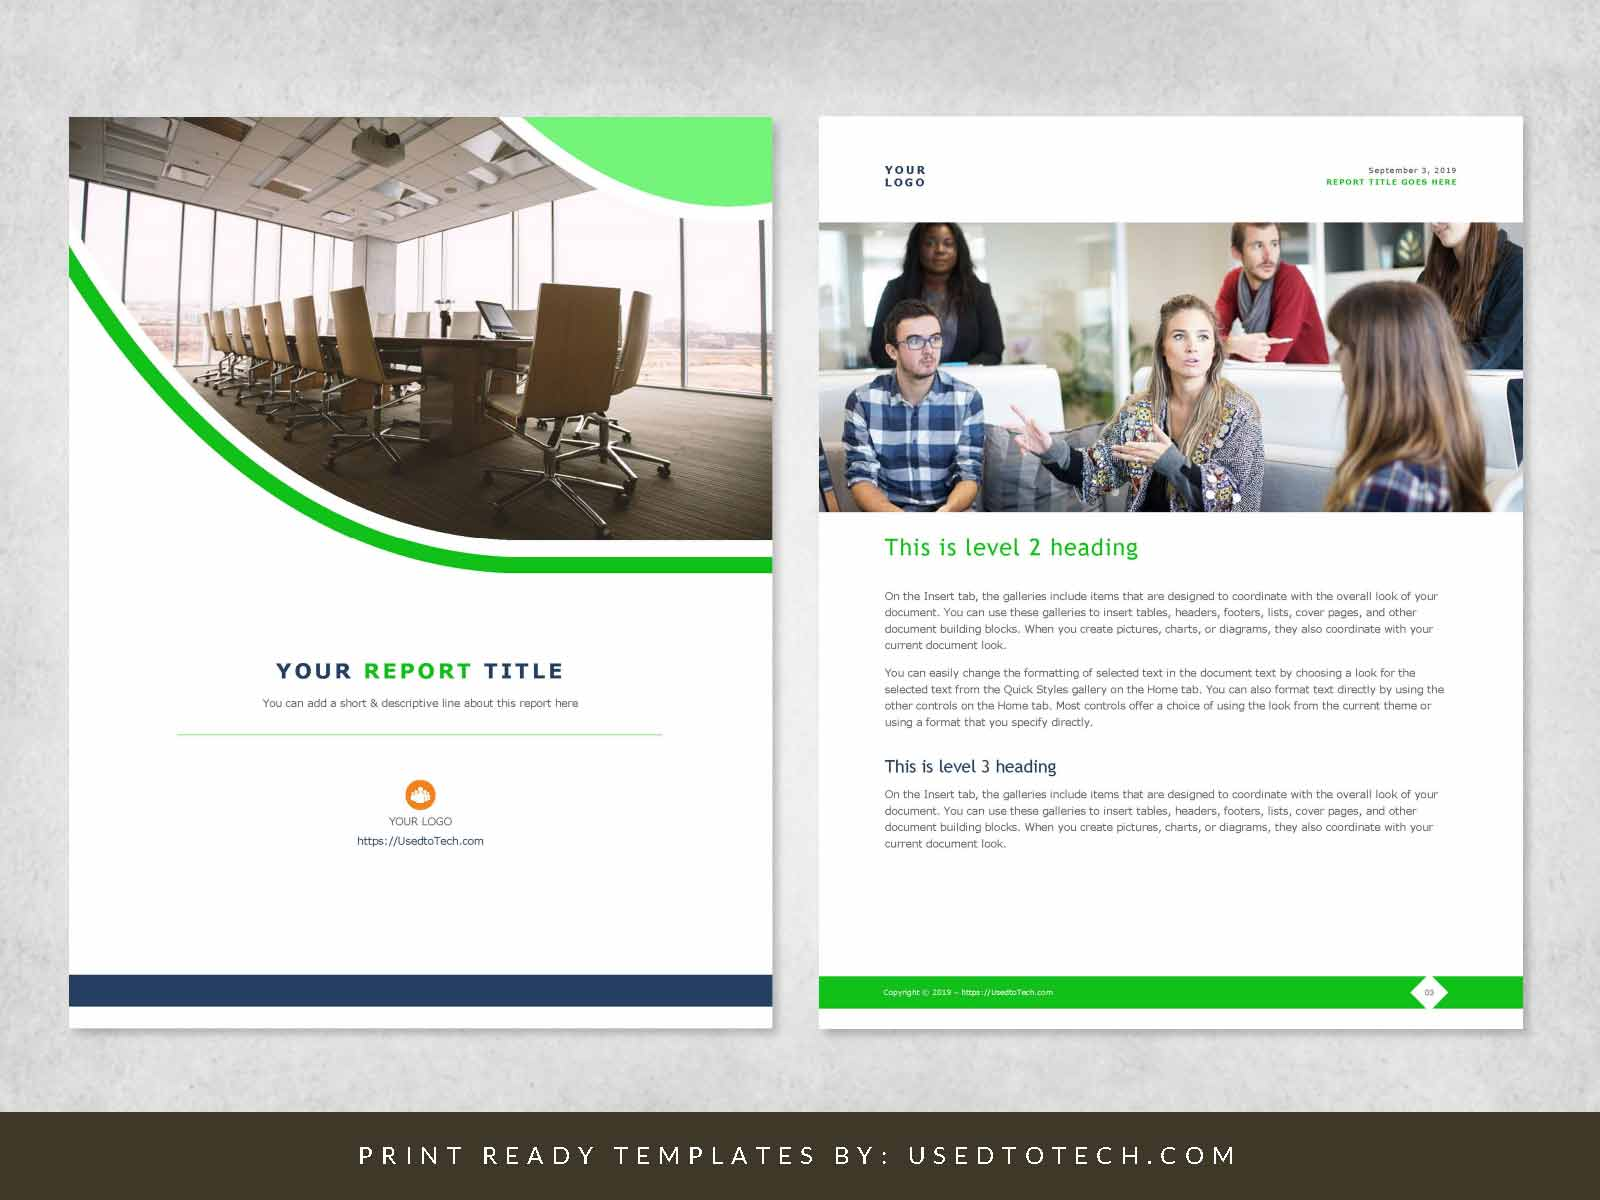 Corporate Report Design Template in Microsoft Word